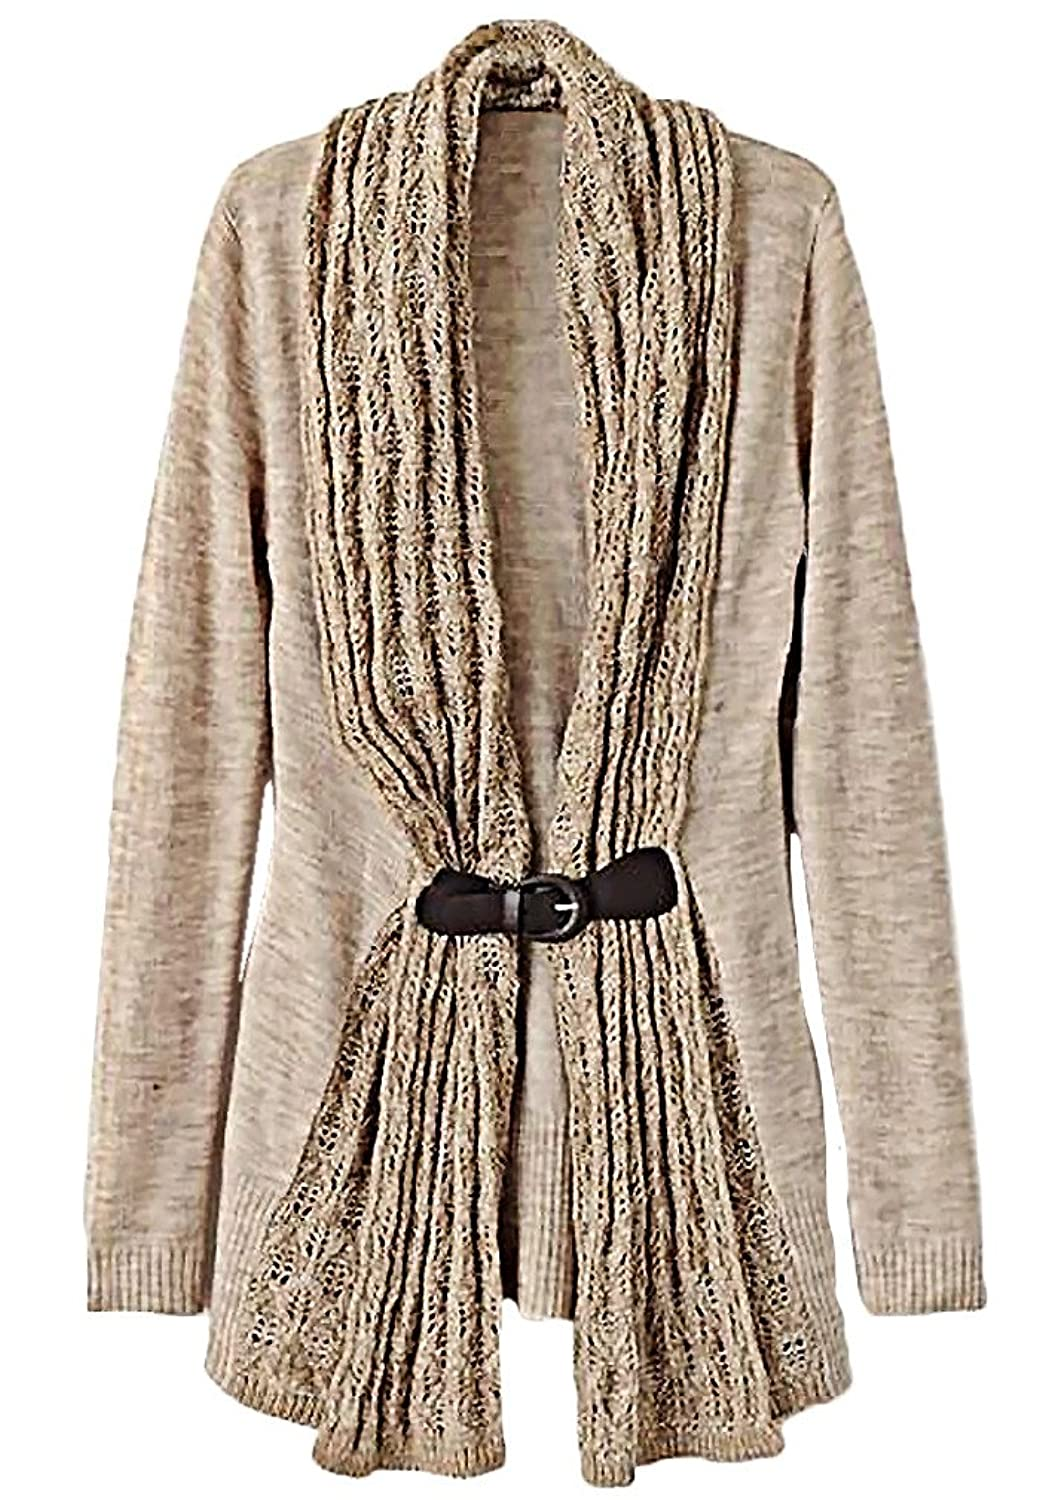 Carolina Women's Stylish Knitted Sweater with PU Leather Sash Soft Pullover SW20